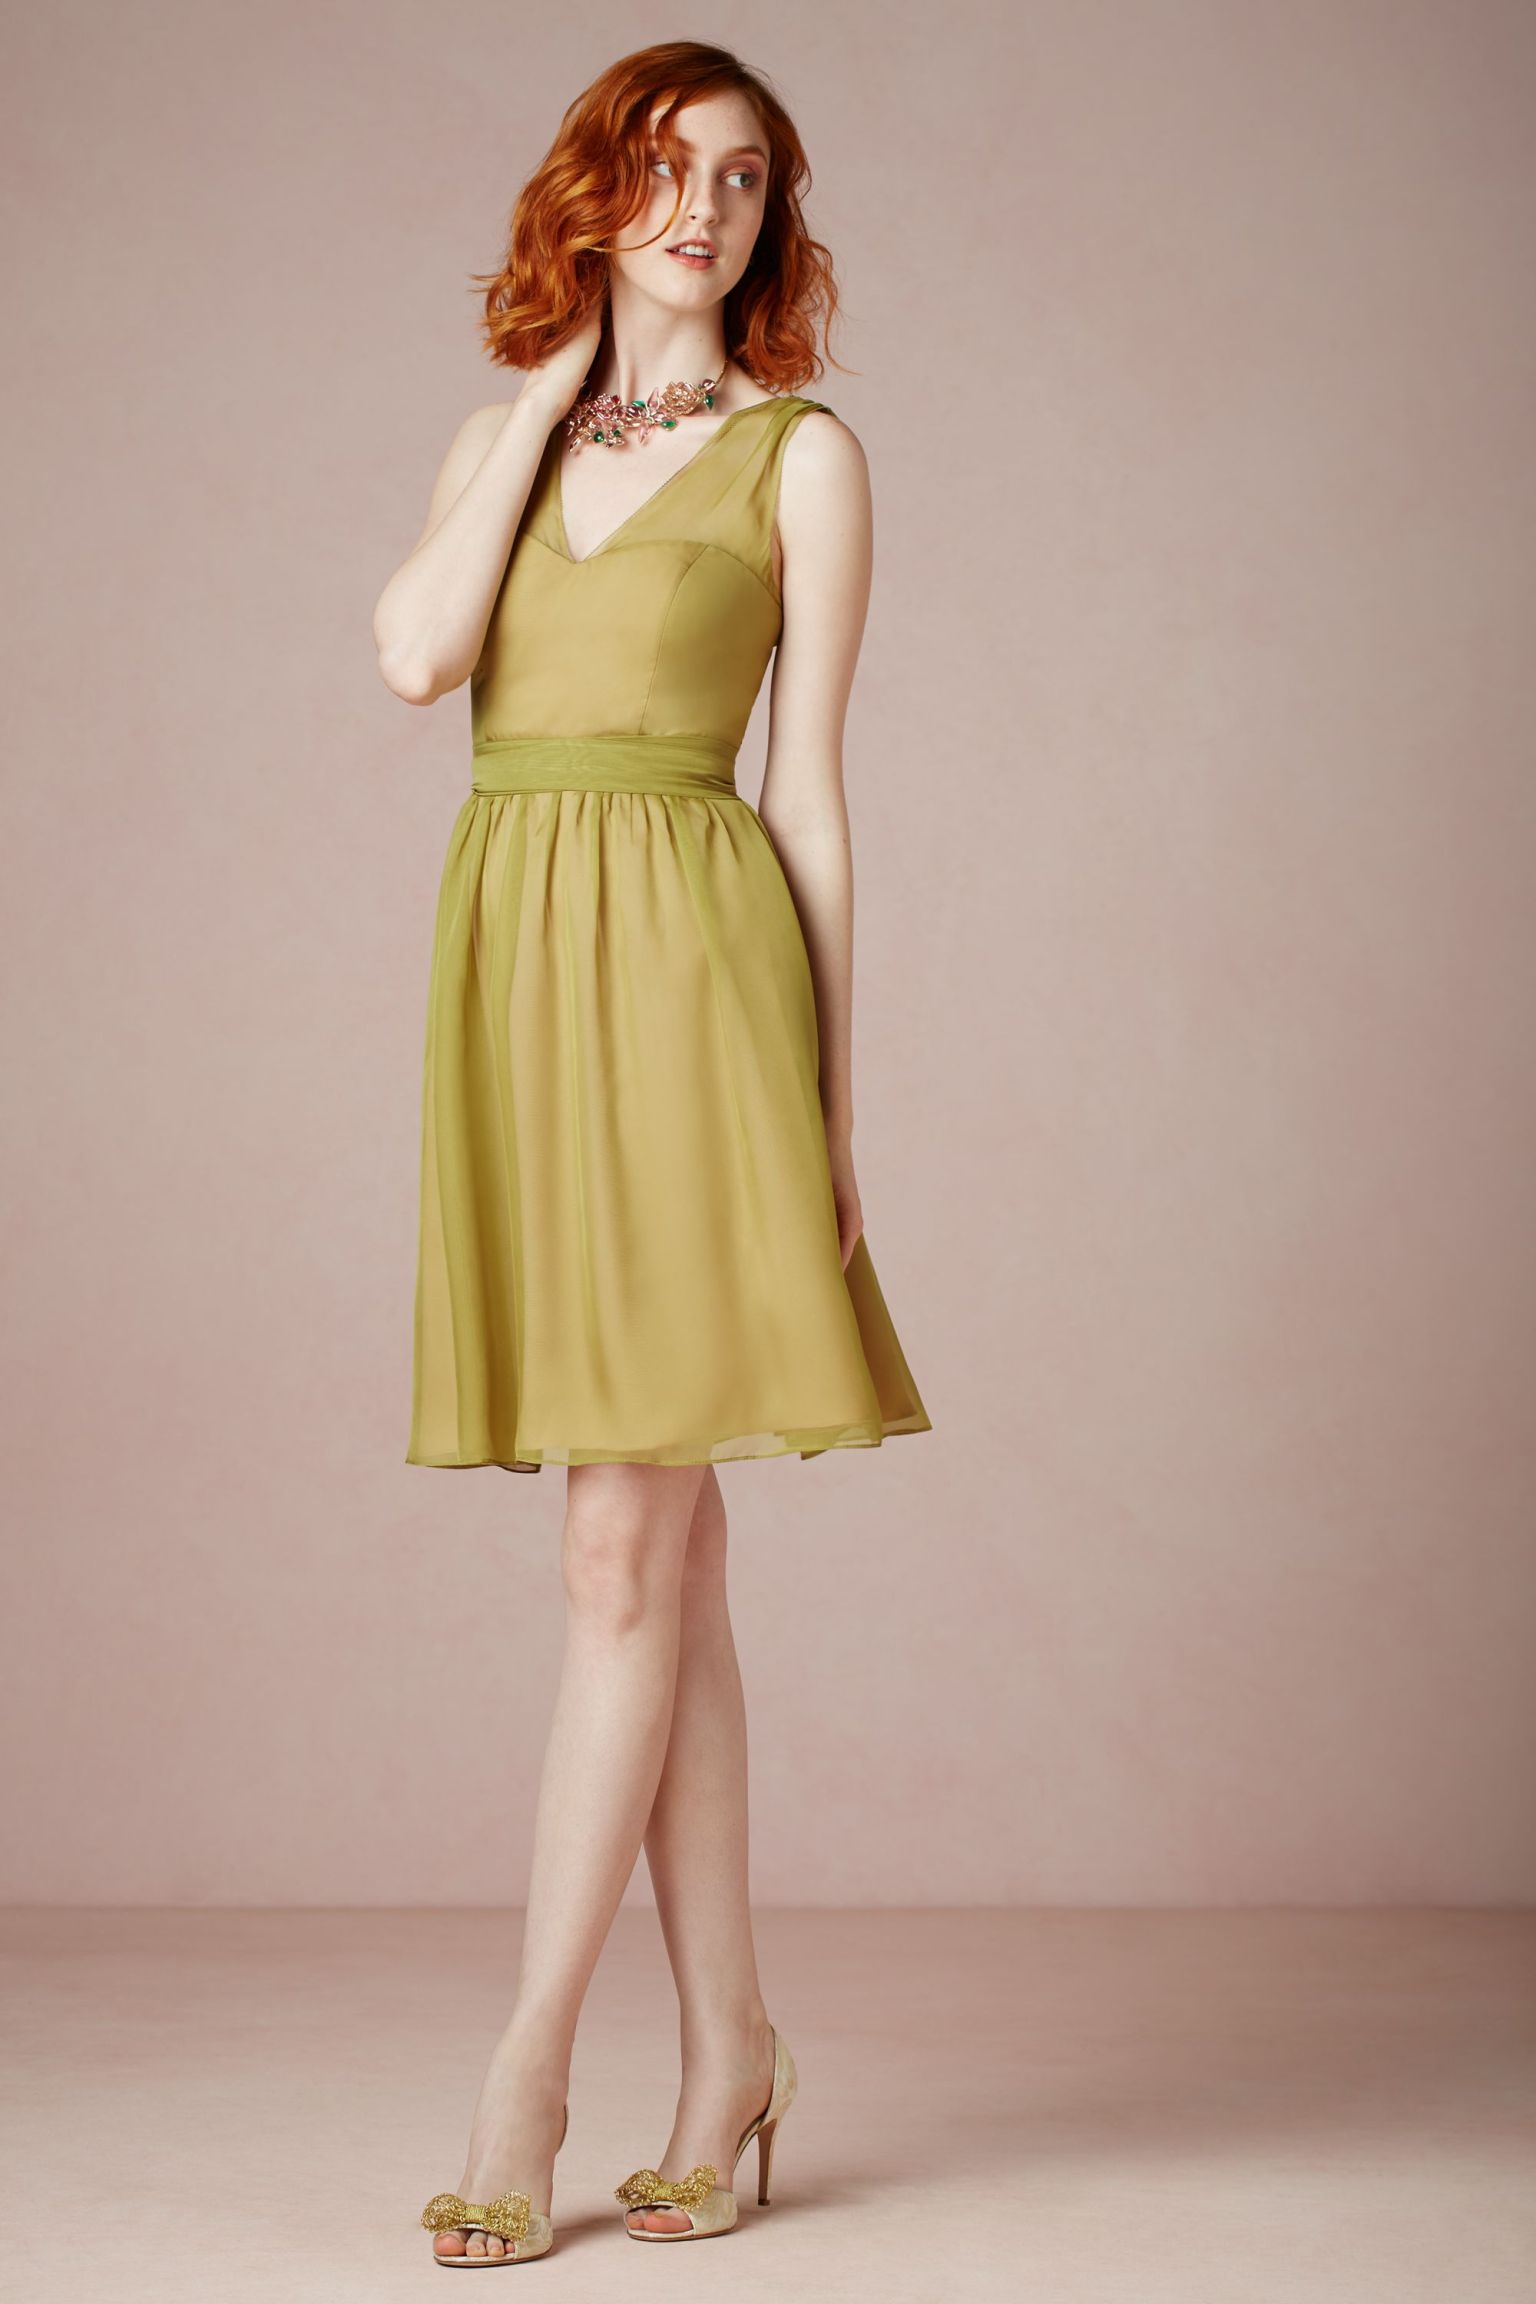 Fall wedding guest dress ideas photos huffpost for Dresses to wear at weddings as a guest